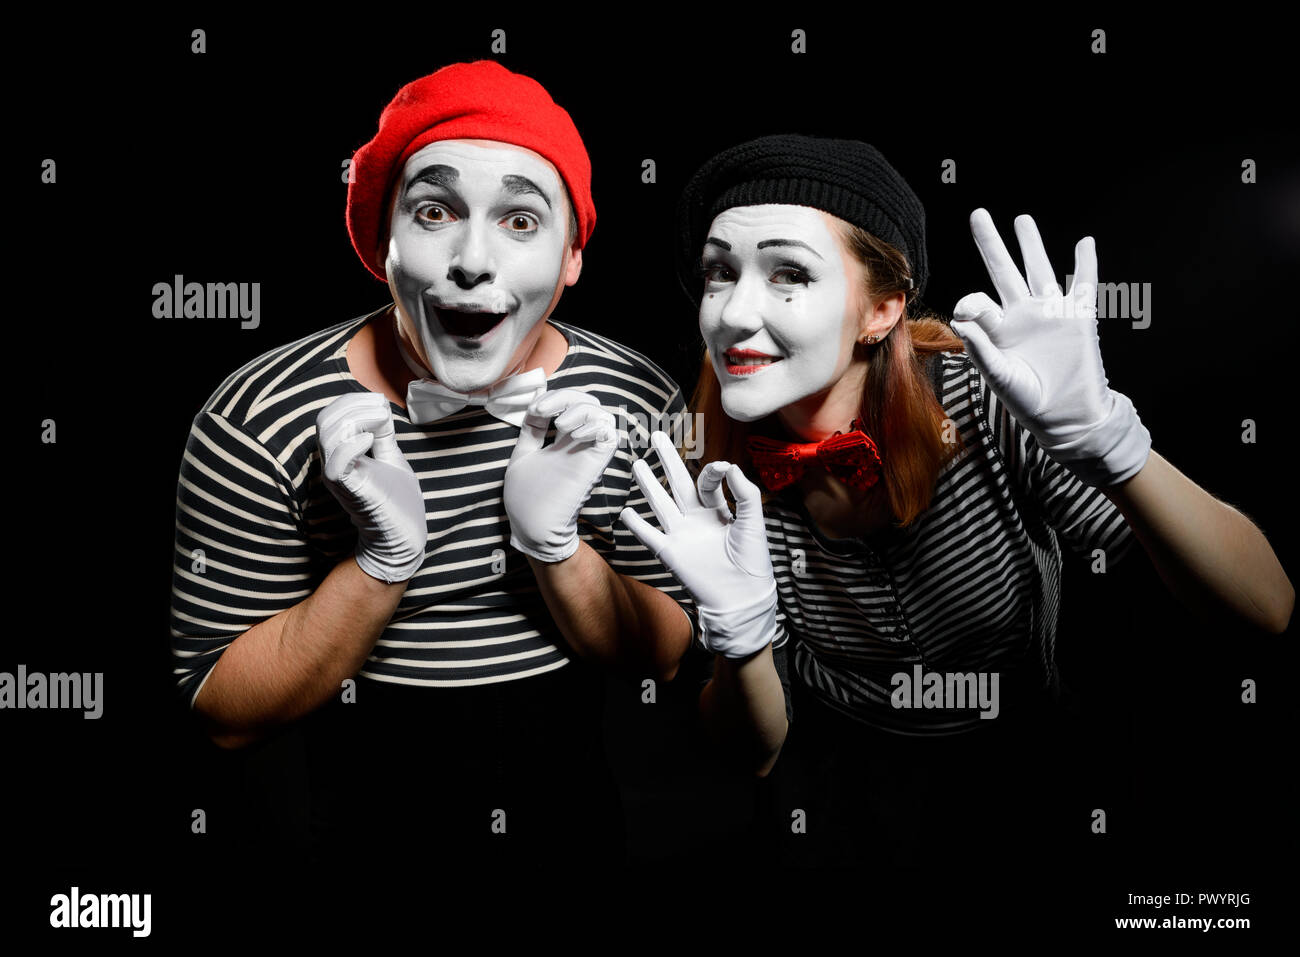 Cute mime artists on black - Stock Image